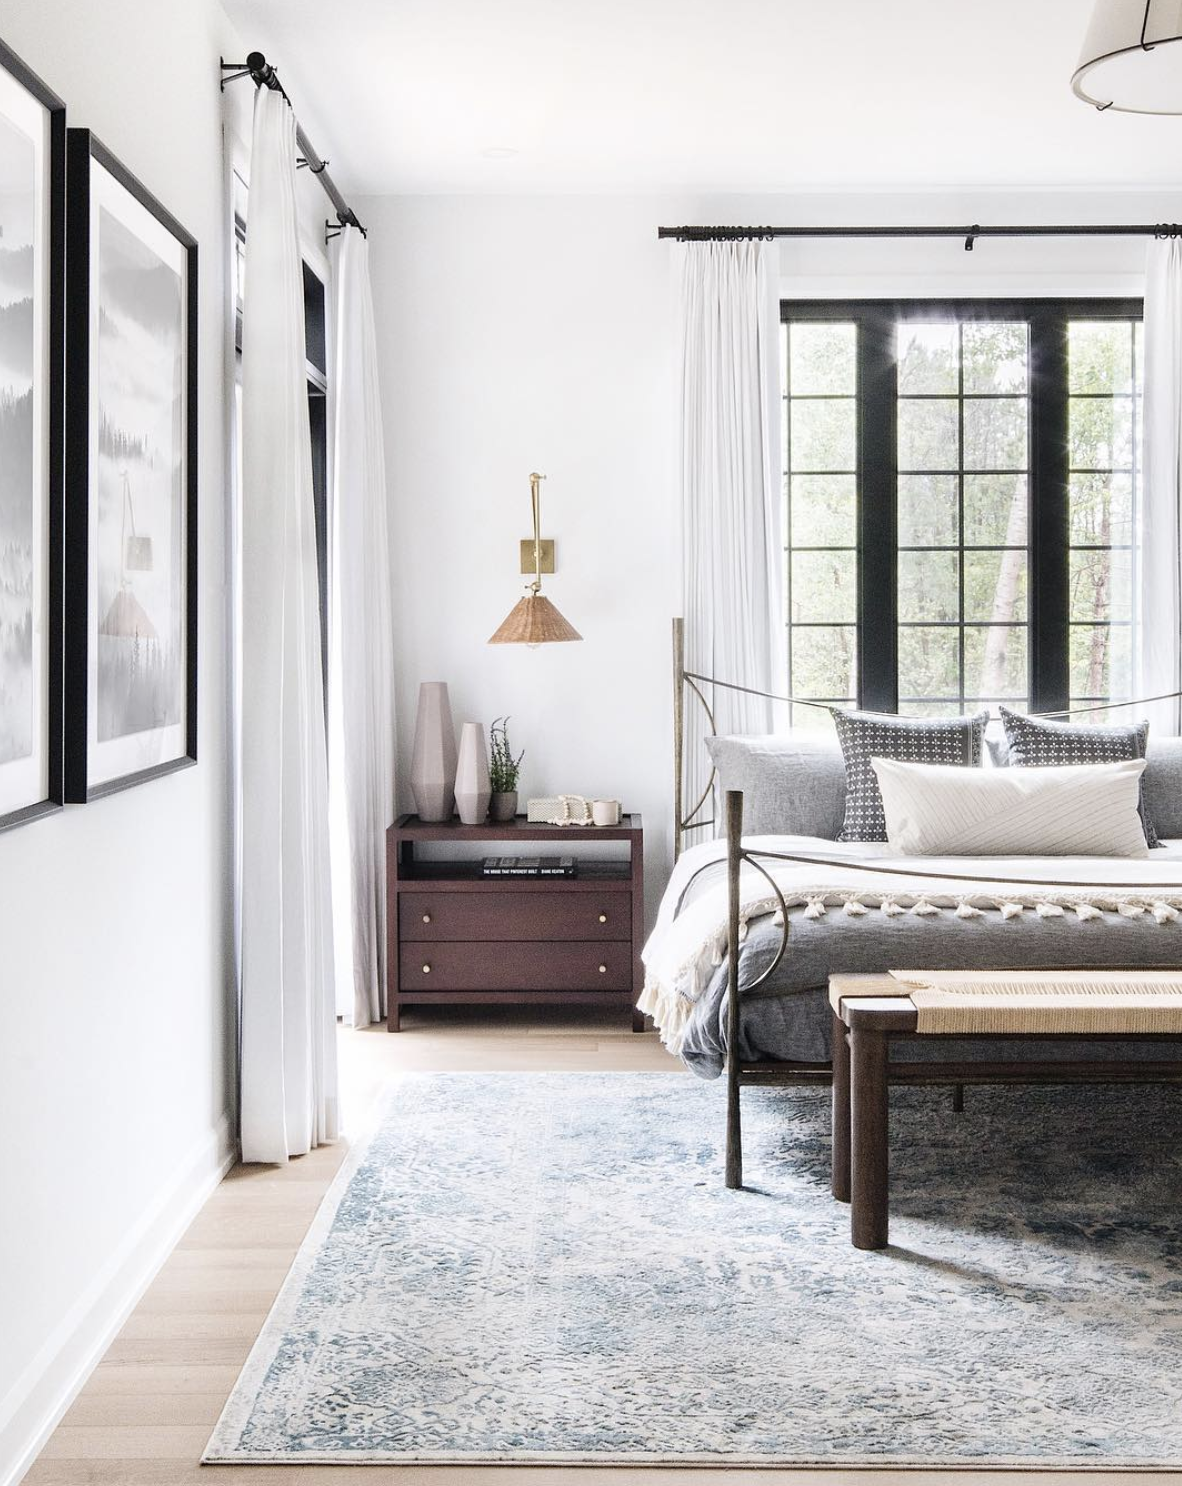 The  Cirque Amalfi Rug  in size 8x10 Rug in the Carp Master Bedroom Project |  Price: $899 CAD